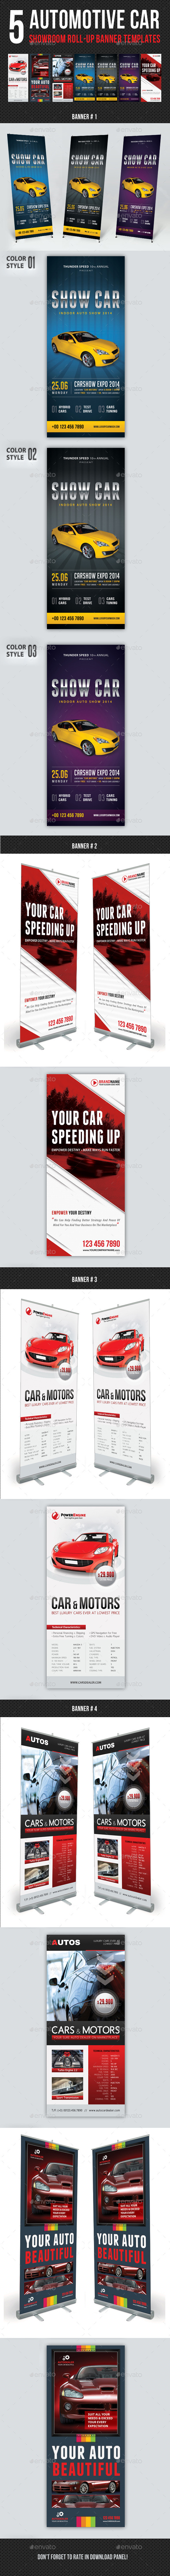 5 in 1 Automotive Car Showroom Banner Bundle - Signage Print Templates